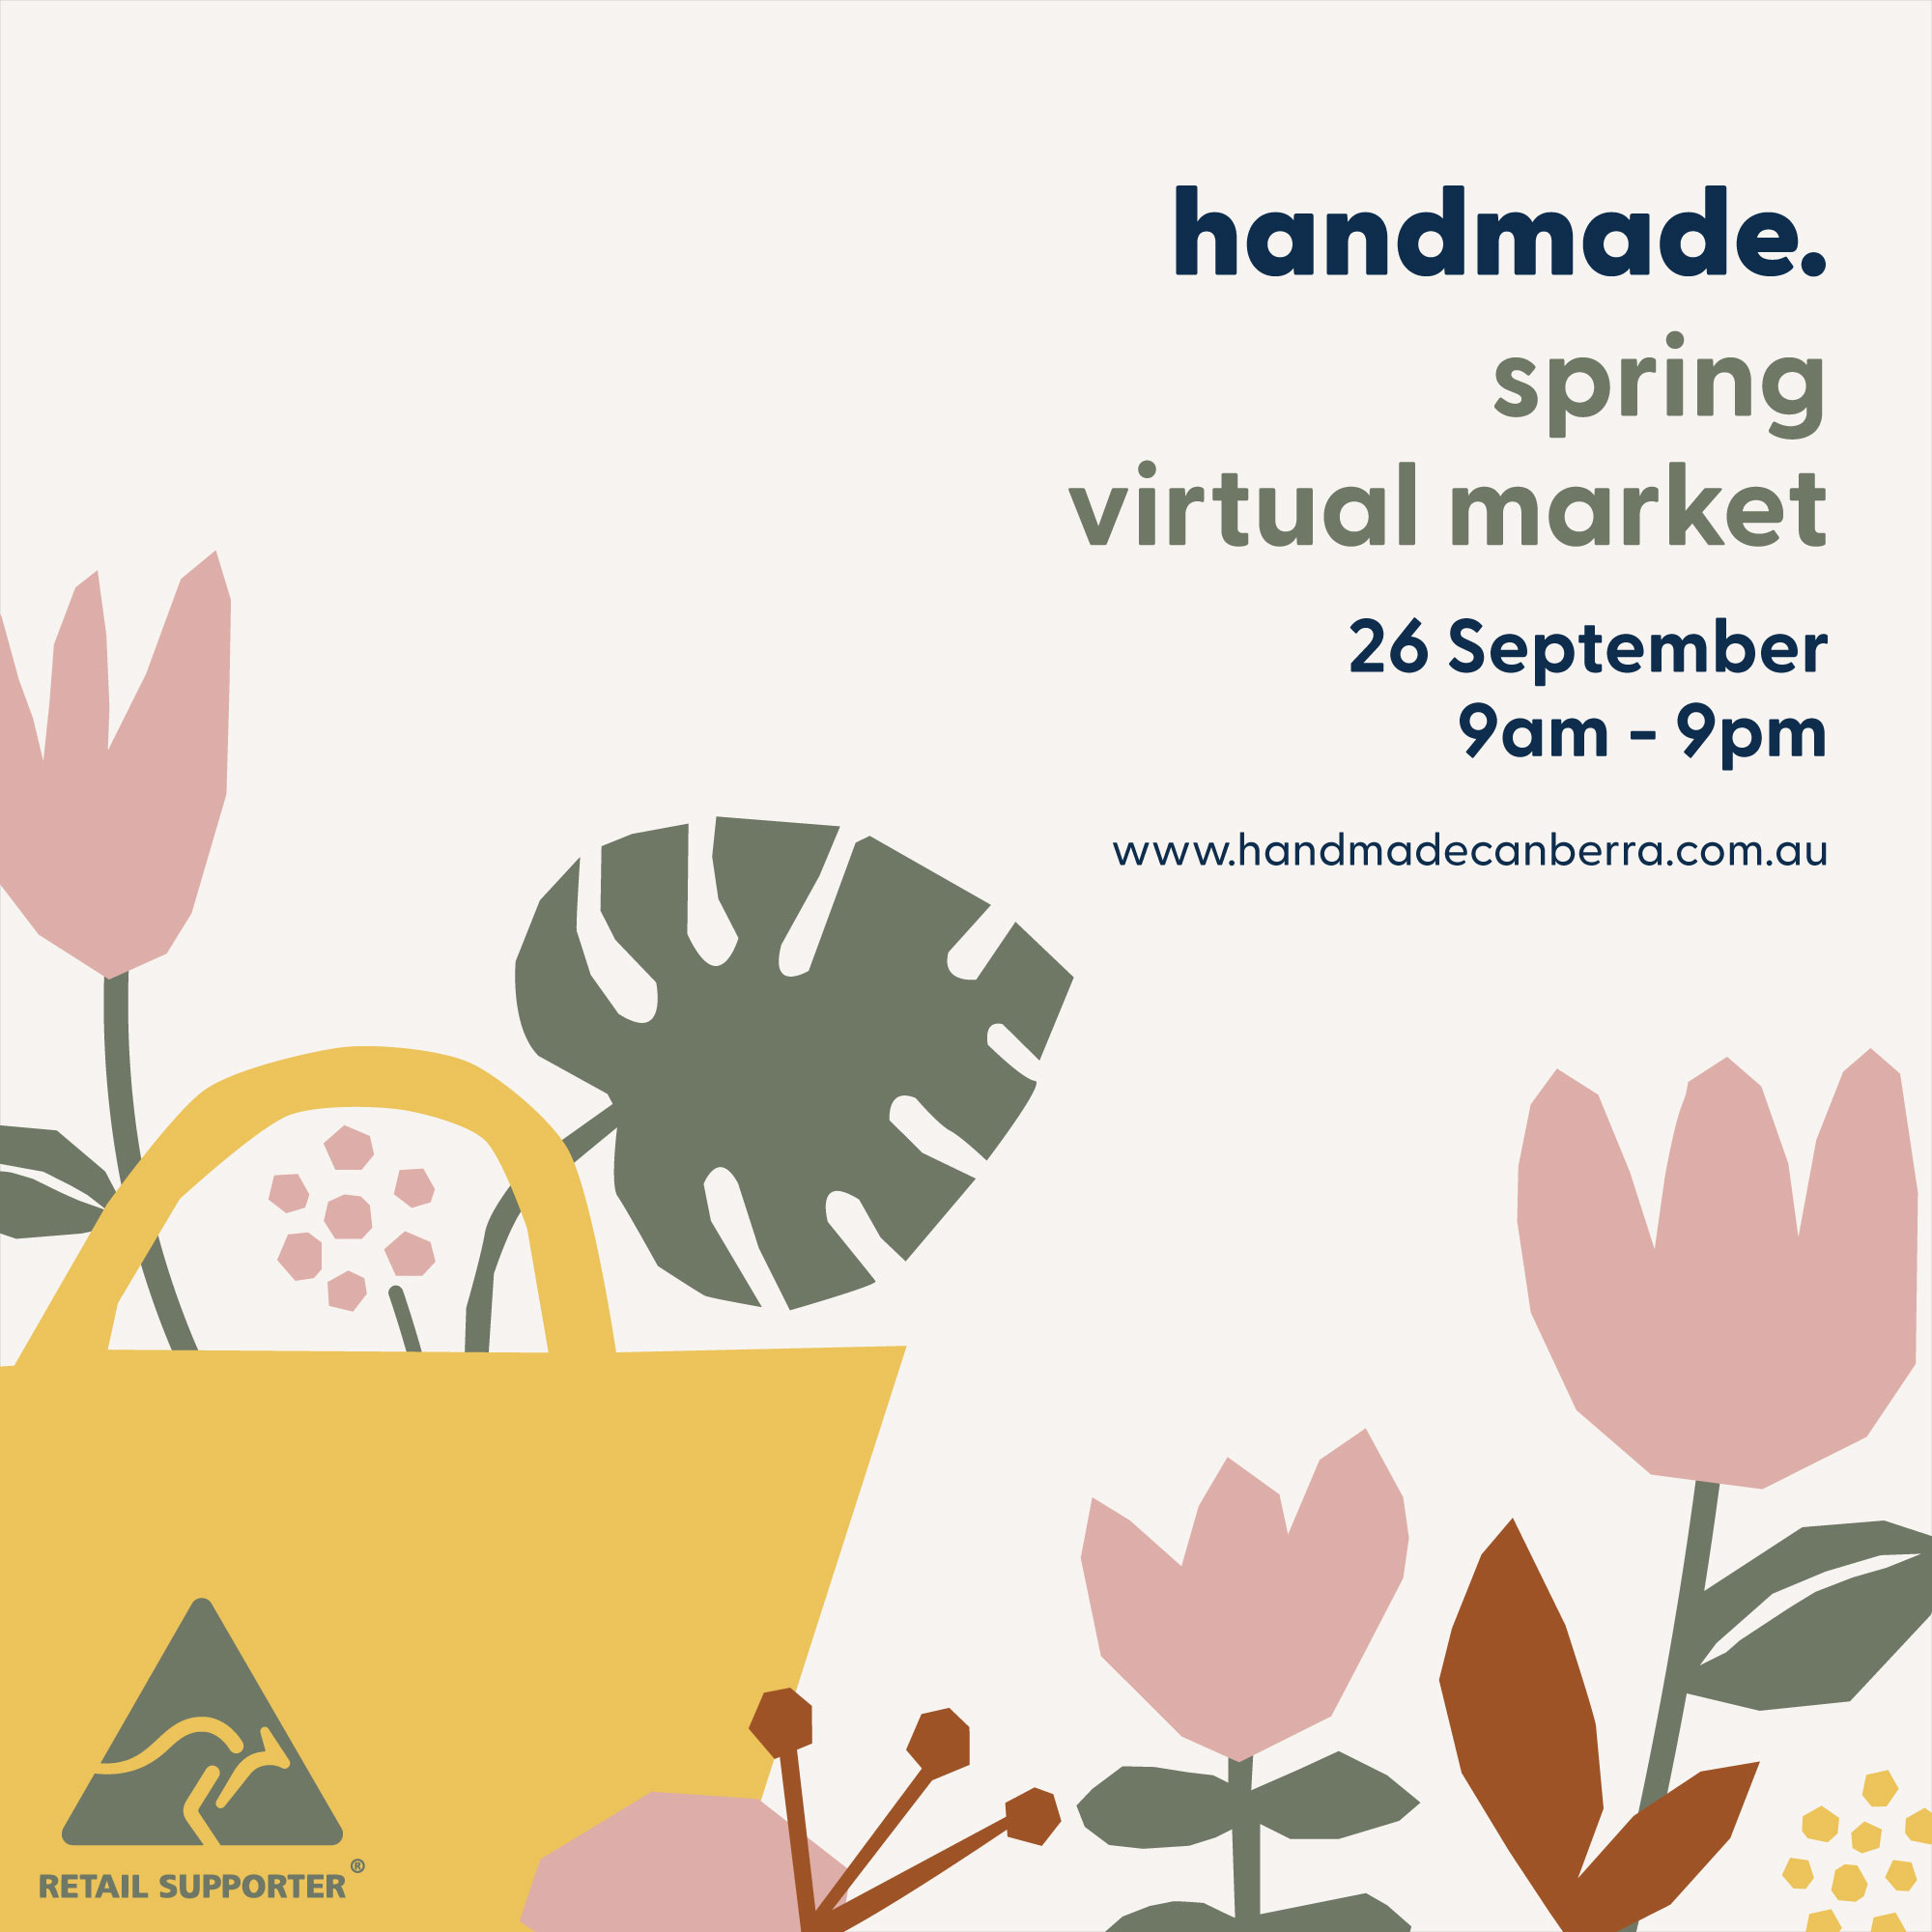 "*FREE GIFT with all orders received over $40 during this Spring Virtual Market 26 Sept 9am-9pm! Use code ""HANDMADEVIRTUAL"" at checkout to receive a free coupon against any one product from the special category on the day.... VIRTUAL MARKET GIFT WITH PURCHASE OFFER* CATEGORY https://nextromance.com.au/product-category/gift-with-purchase-next-romance-virtual-market-offer/ *While stocks last. Seller reserves the right to change or update offering in the unlikely event stocks run out or are unavailable at time of order. next romance jewellery"